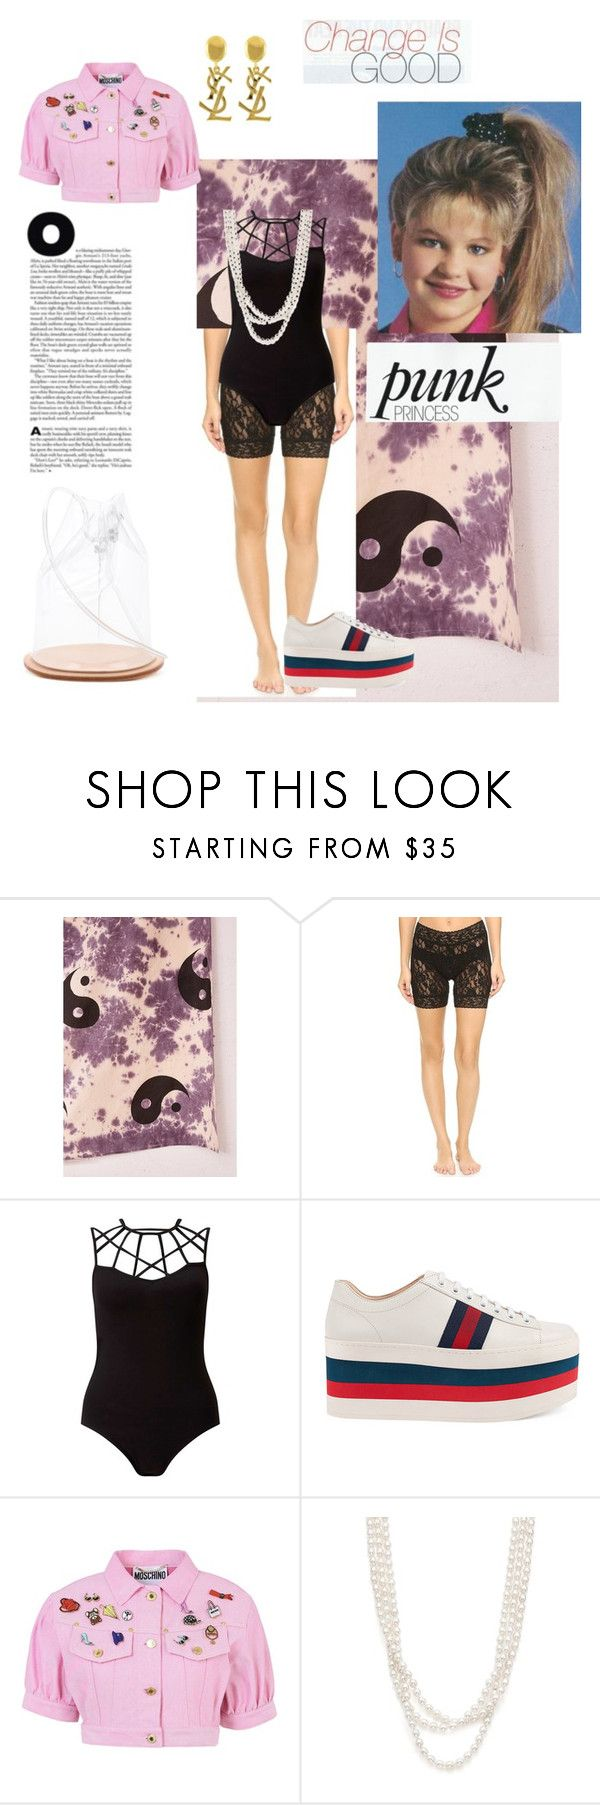 """clubhouse vibes"" by niania-long ❤ liked on Polyvore featuring Urban Outfitters, Hanky Panky, Miss Selfridge, Gucci, Moschino, Bloomingdale's, Yves Saint Laurent and Building Block"